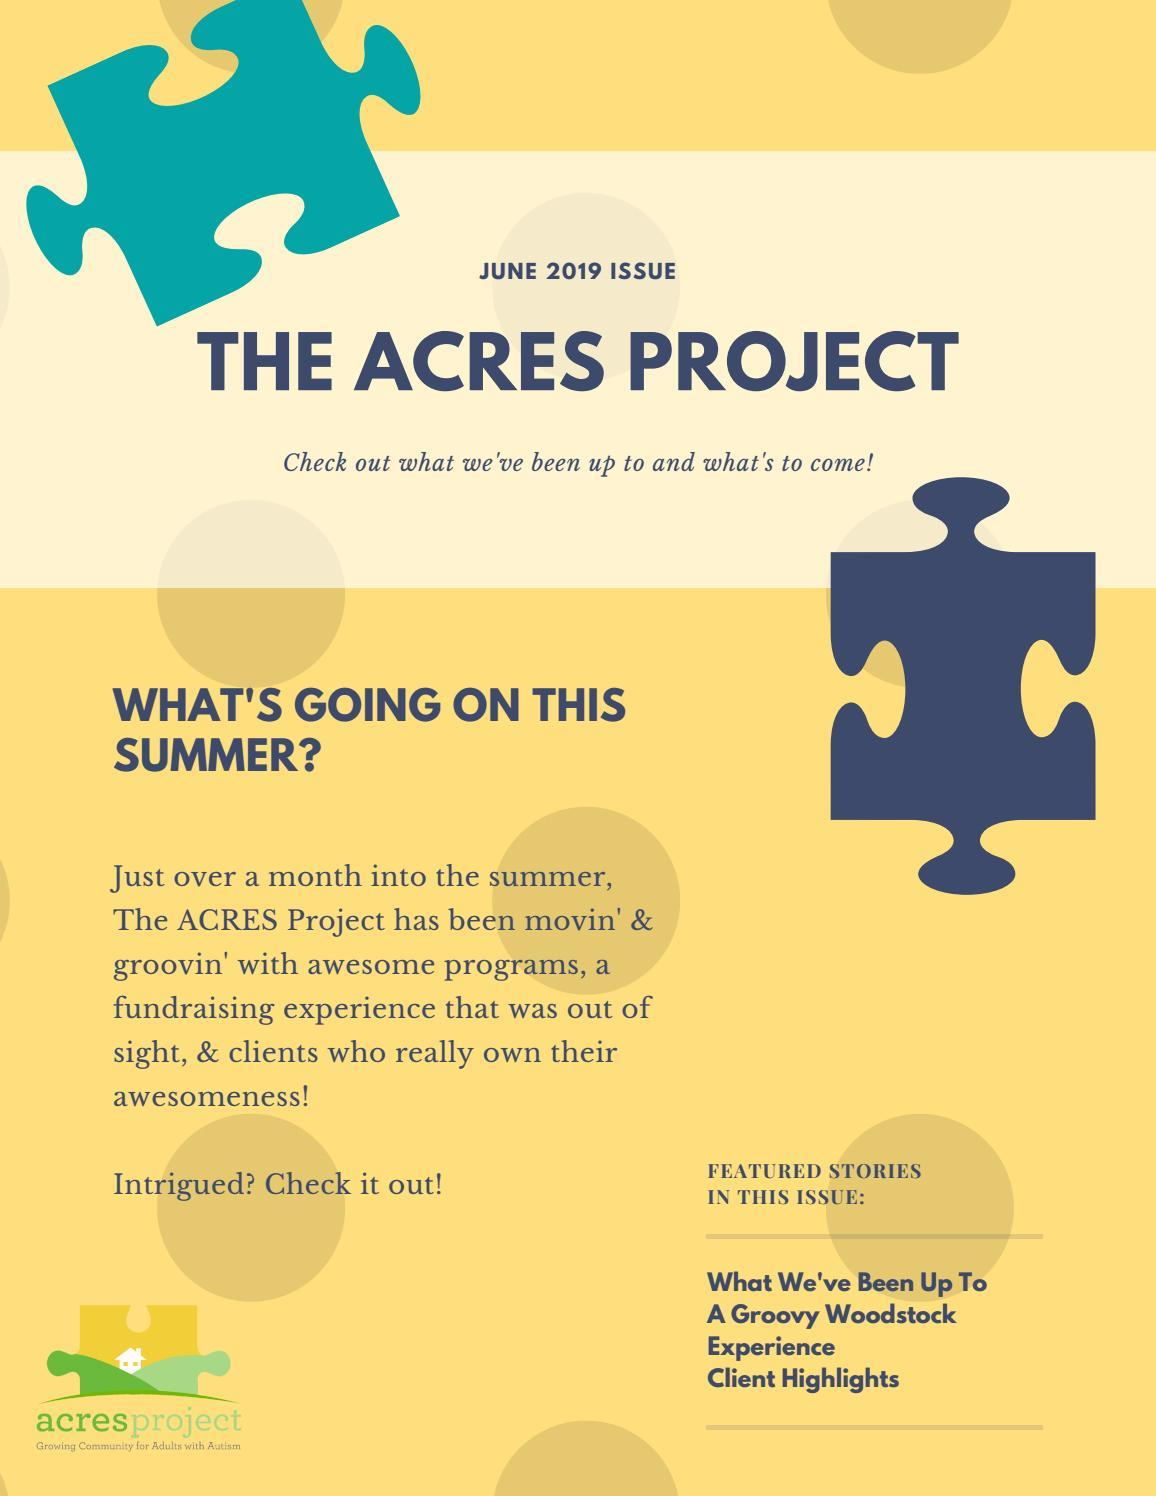 Our latest newsletter is live! Check out what ACRES has been up to this summer, and what's to come!